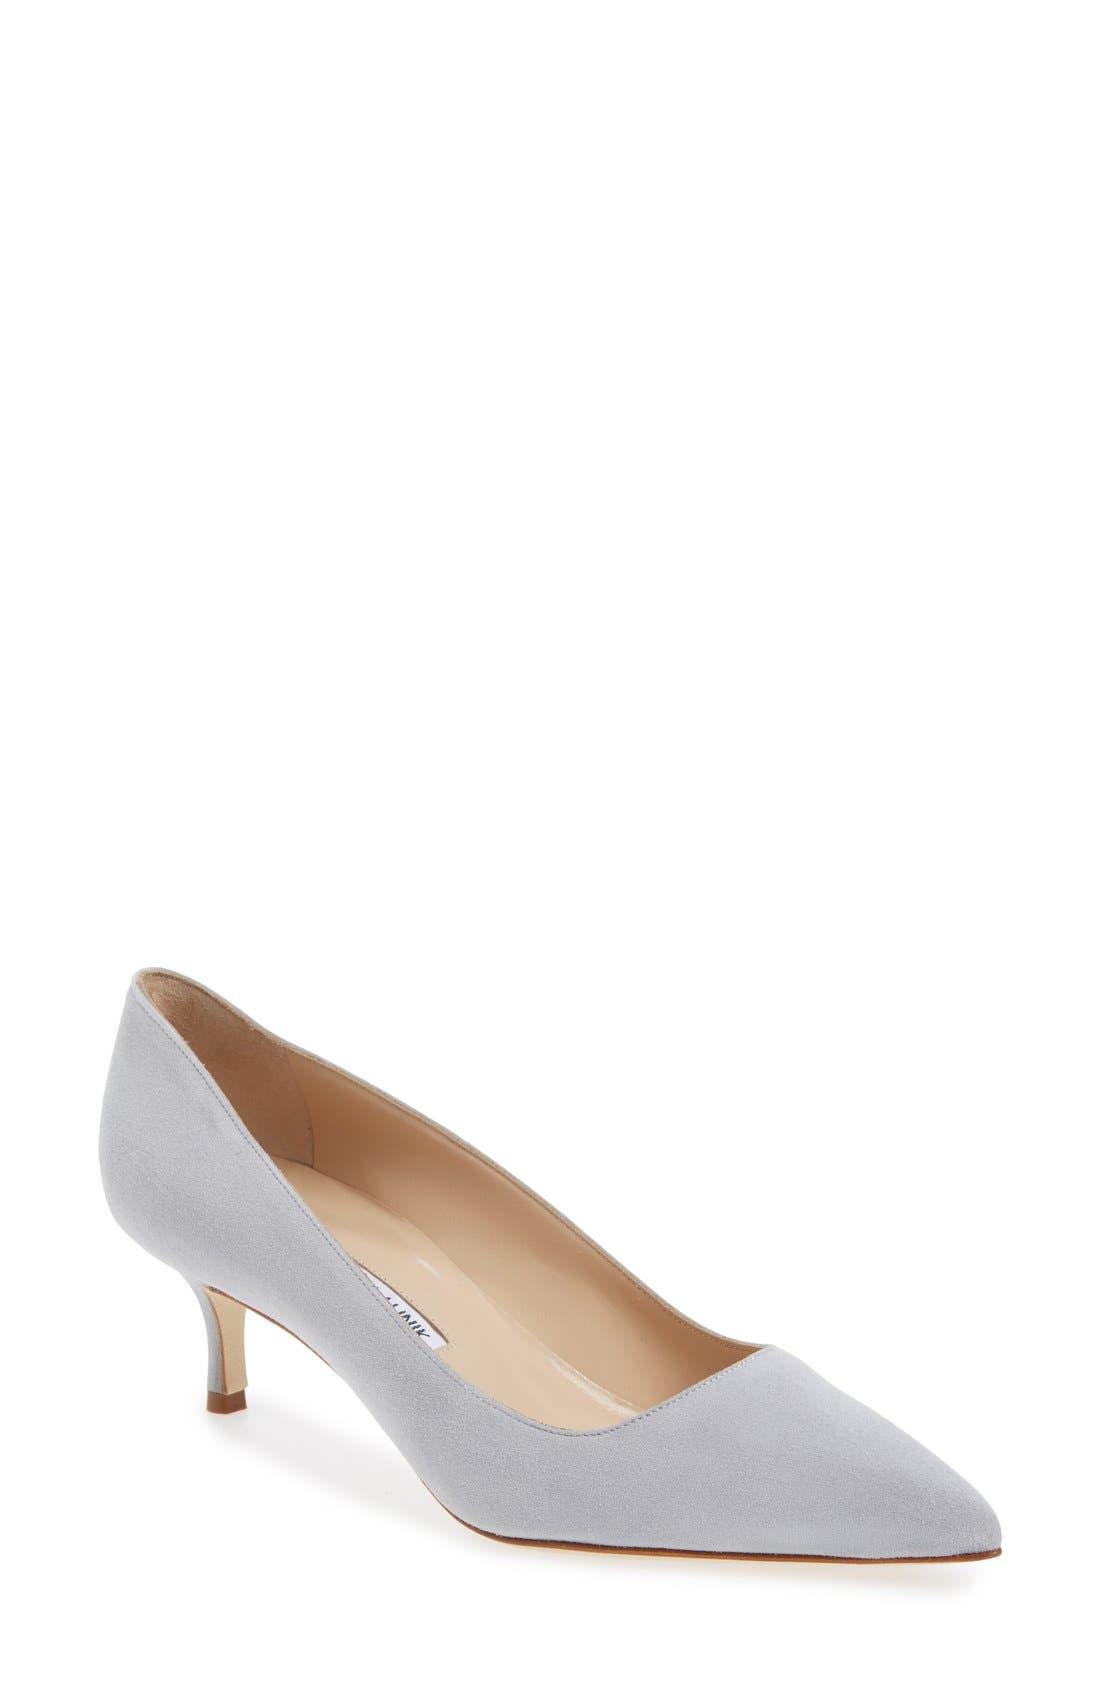 Main Image - Manolo Blahnik 'BB' Pump (Women)